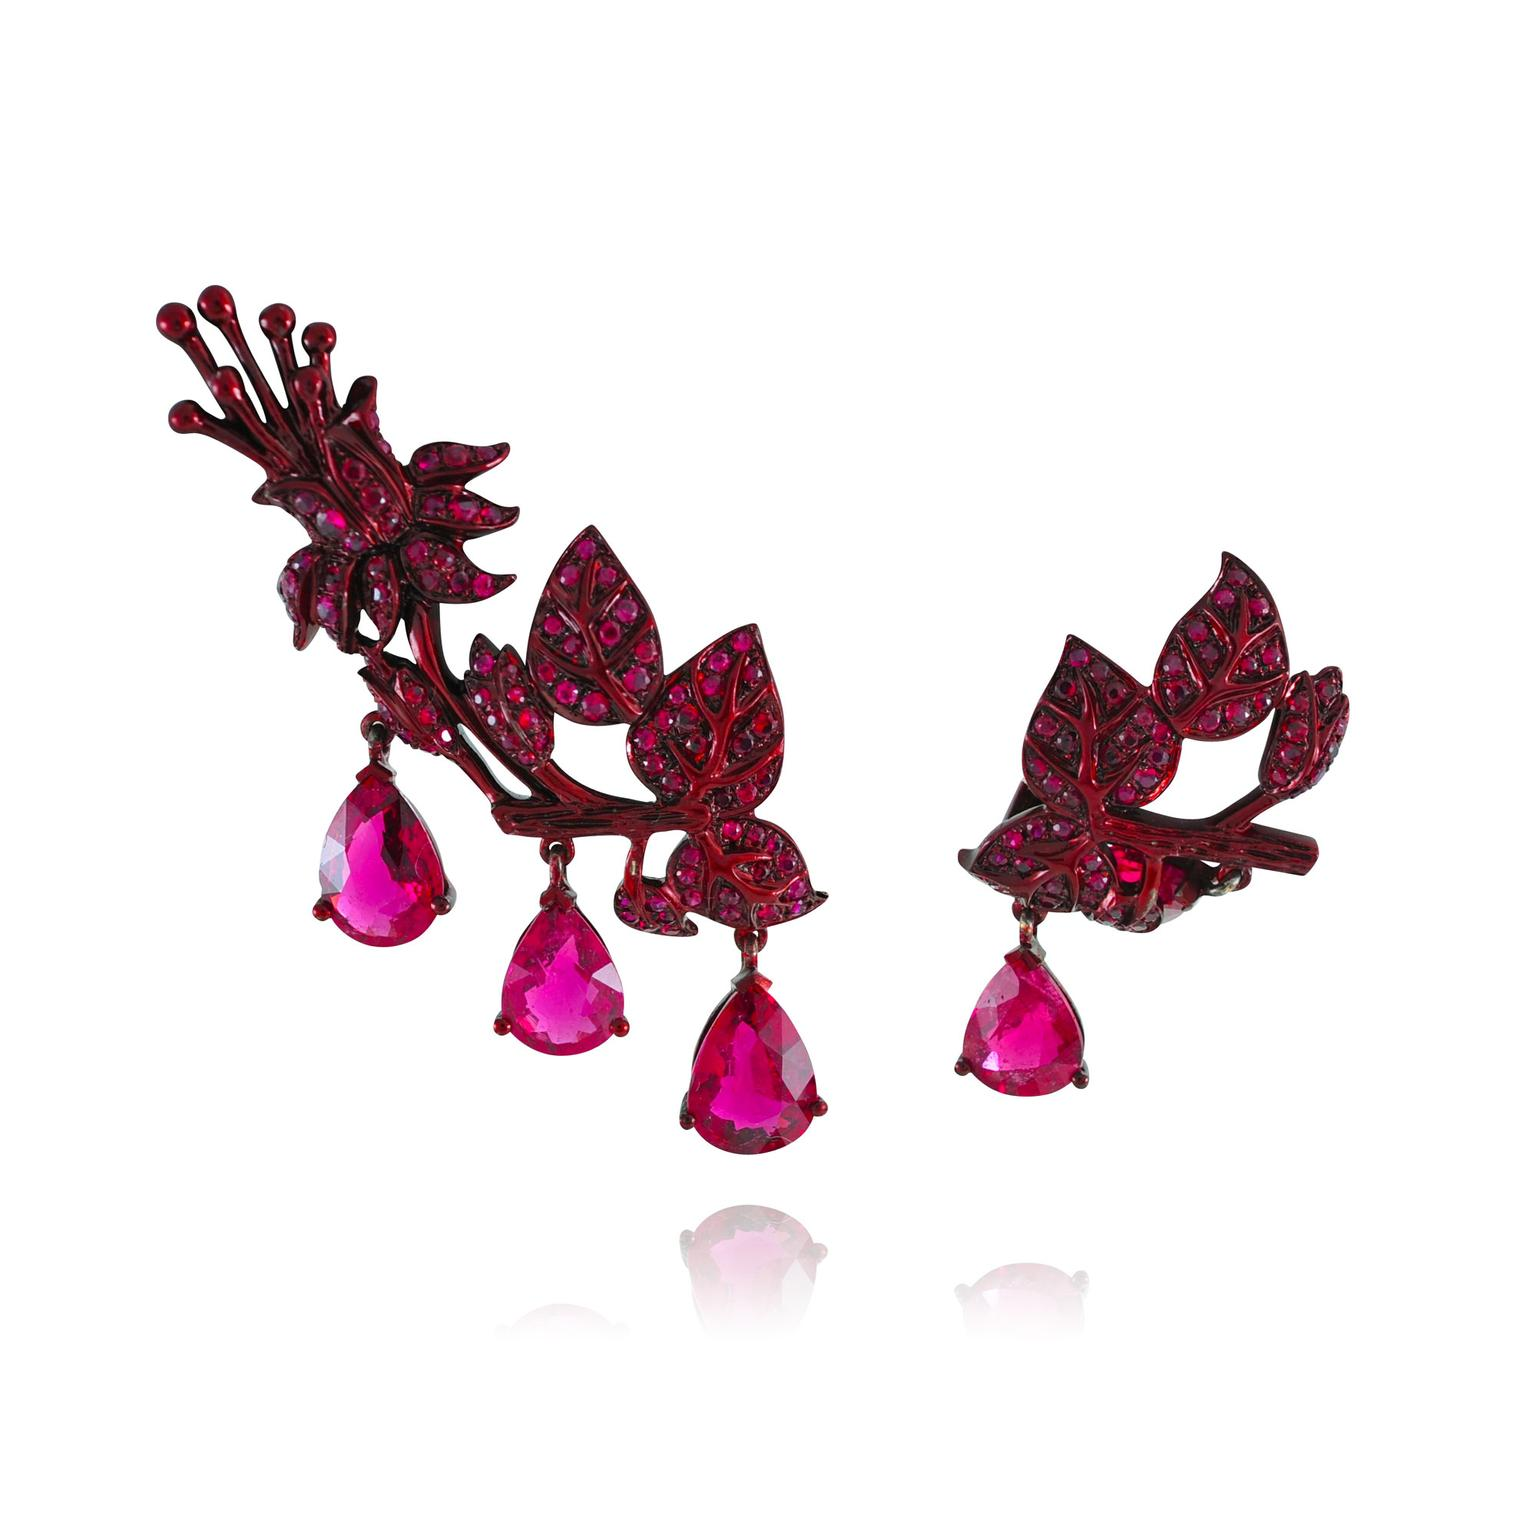 Lydia Courteille Scarlet Empress earrings